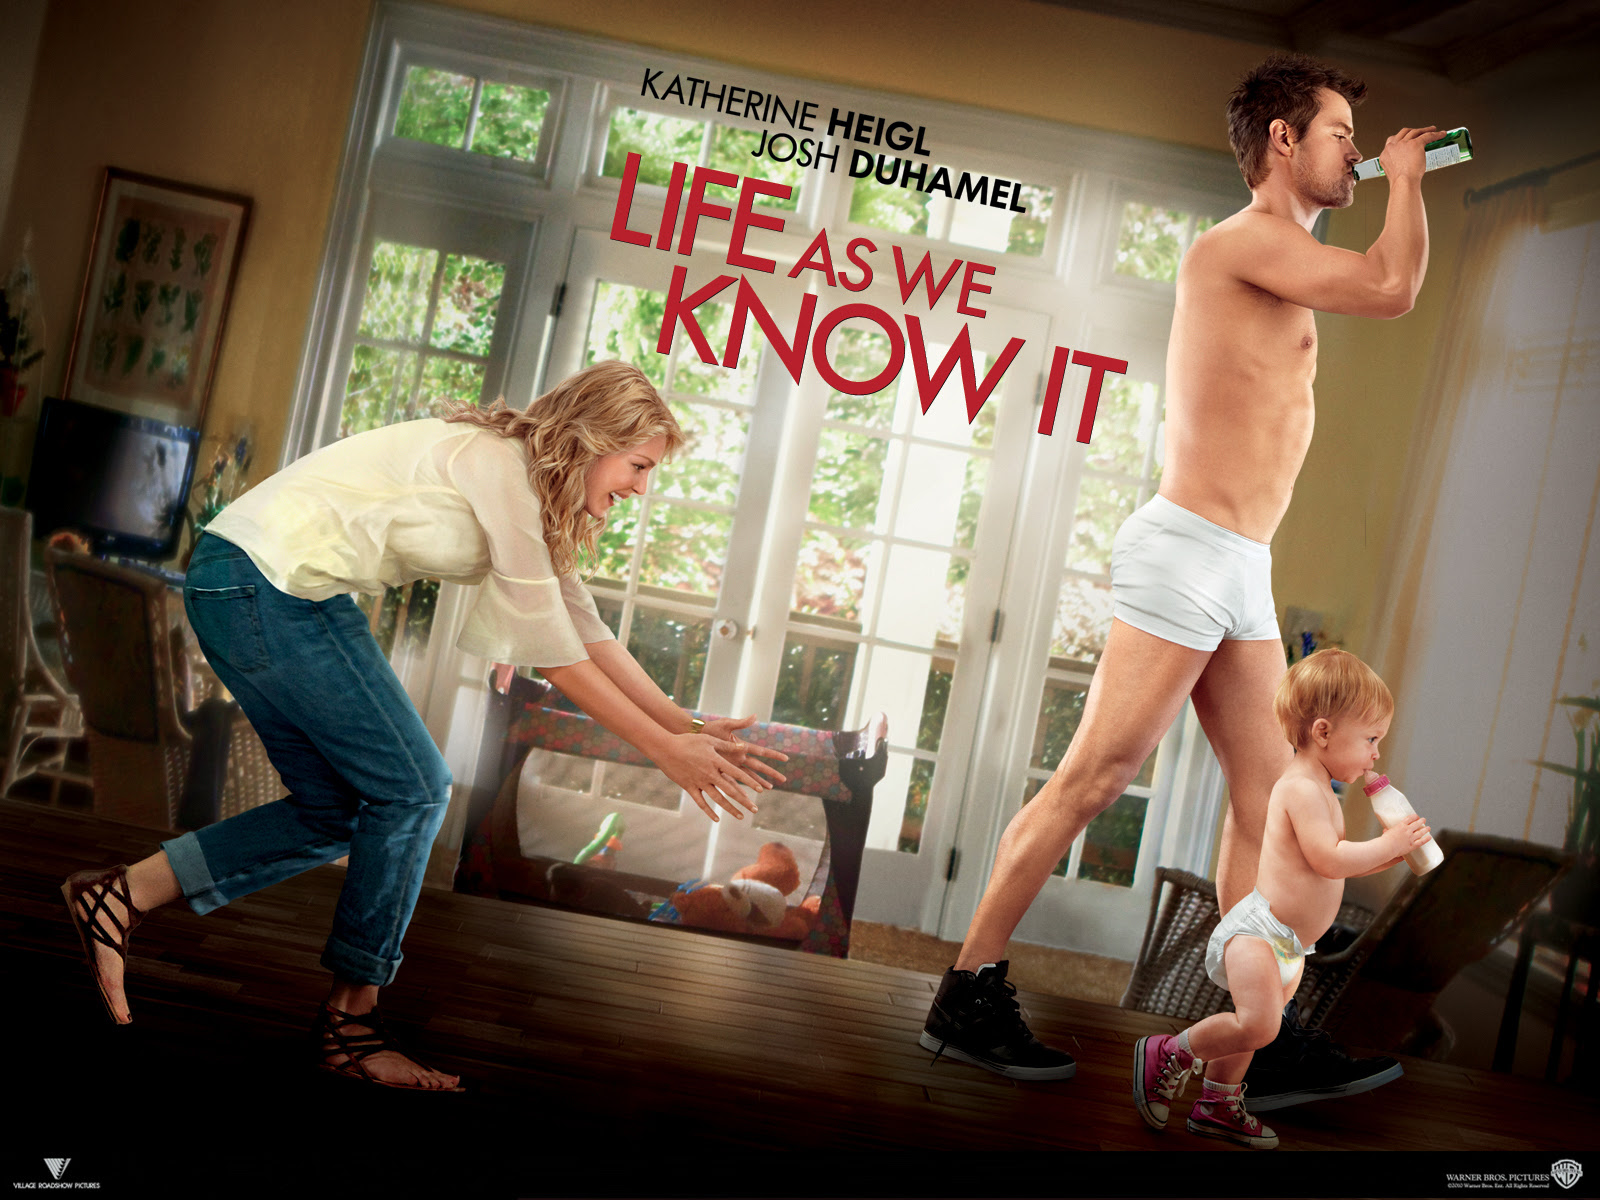 Life As We Know It - life-as-we-know-it wallpaper